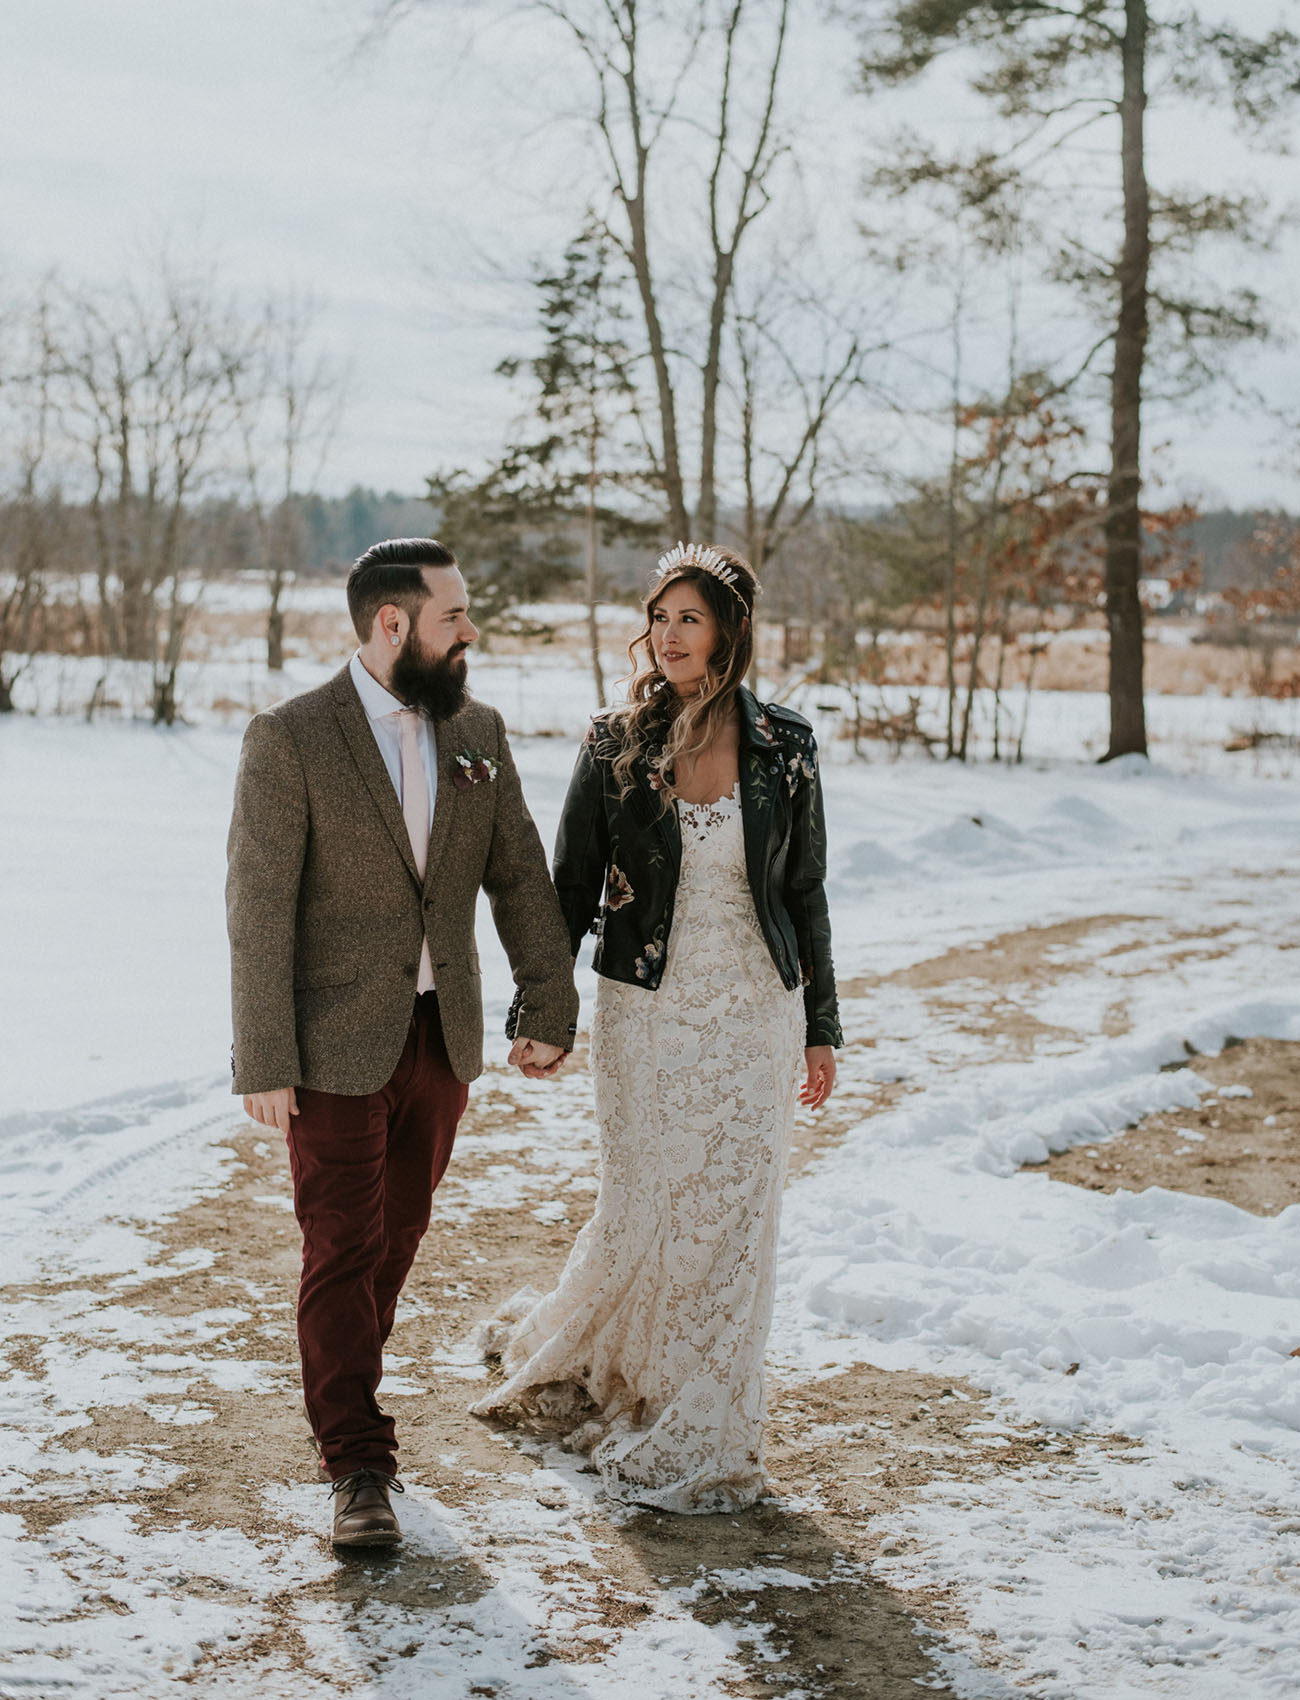 The bride was wearing a lace off the shoulder wedding dress, an embroidered leather jacket and a bold crystal headpiece